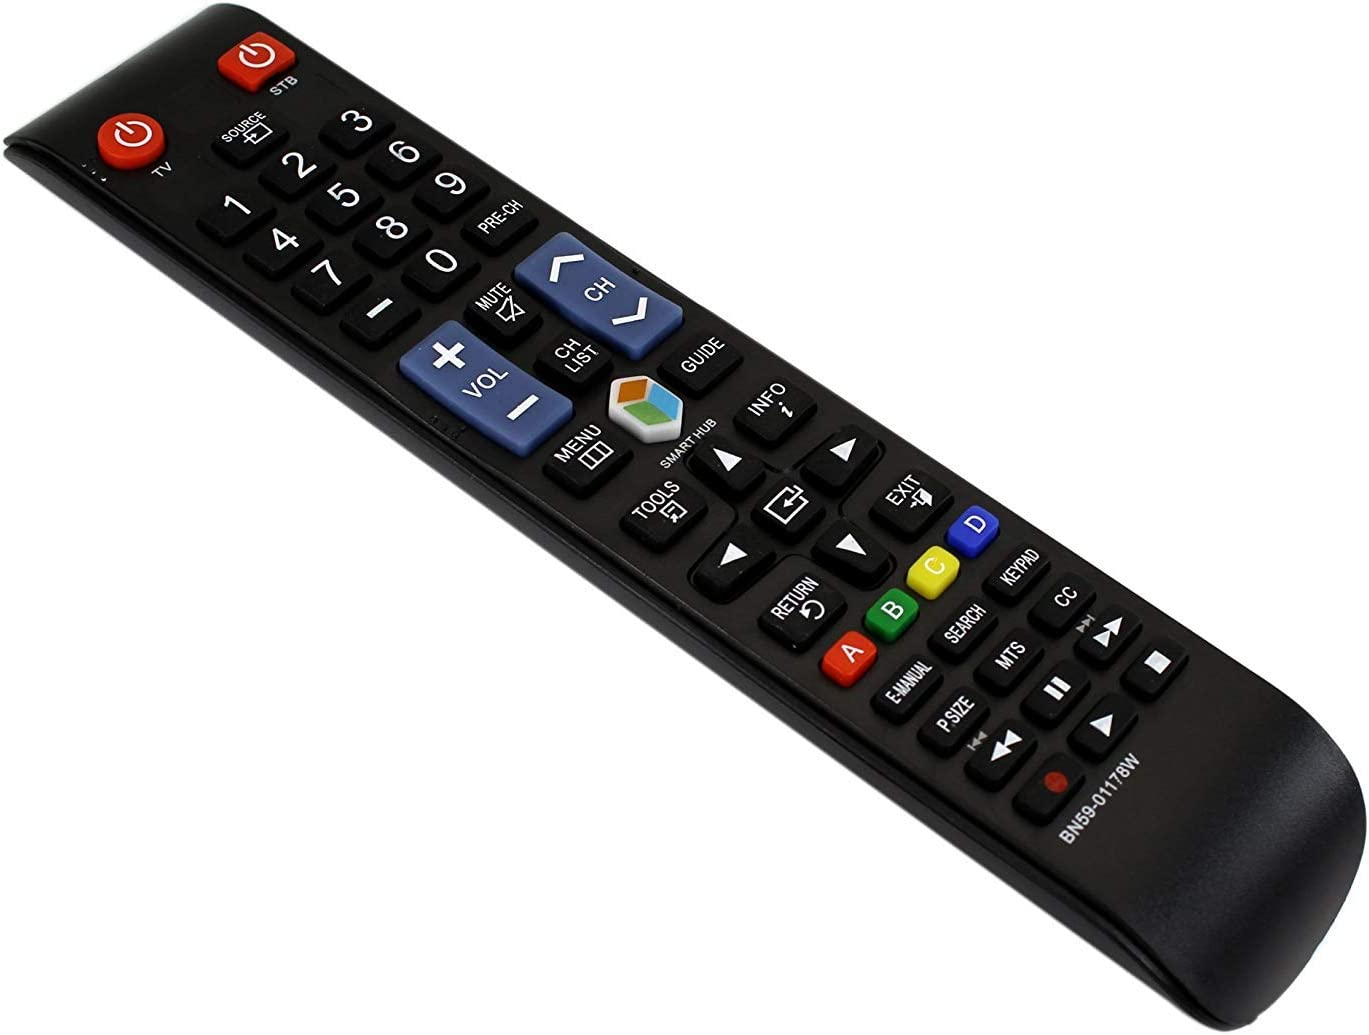 Universal Remote Control BN59-01178W for Samsung Smart-TV HDTV LCD LED TVs